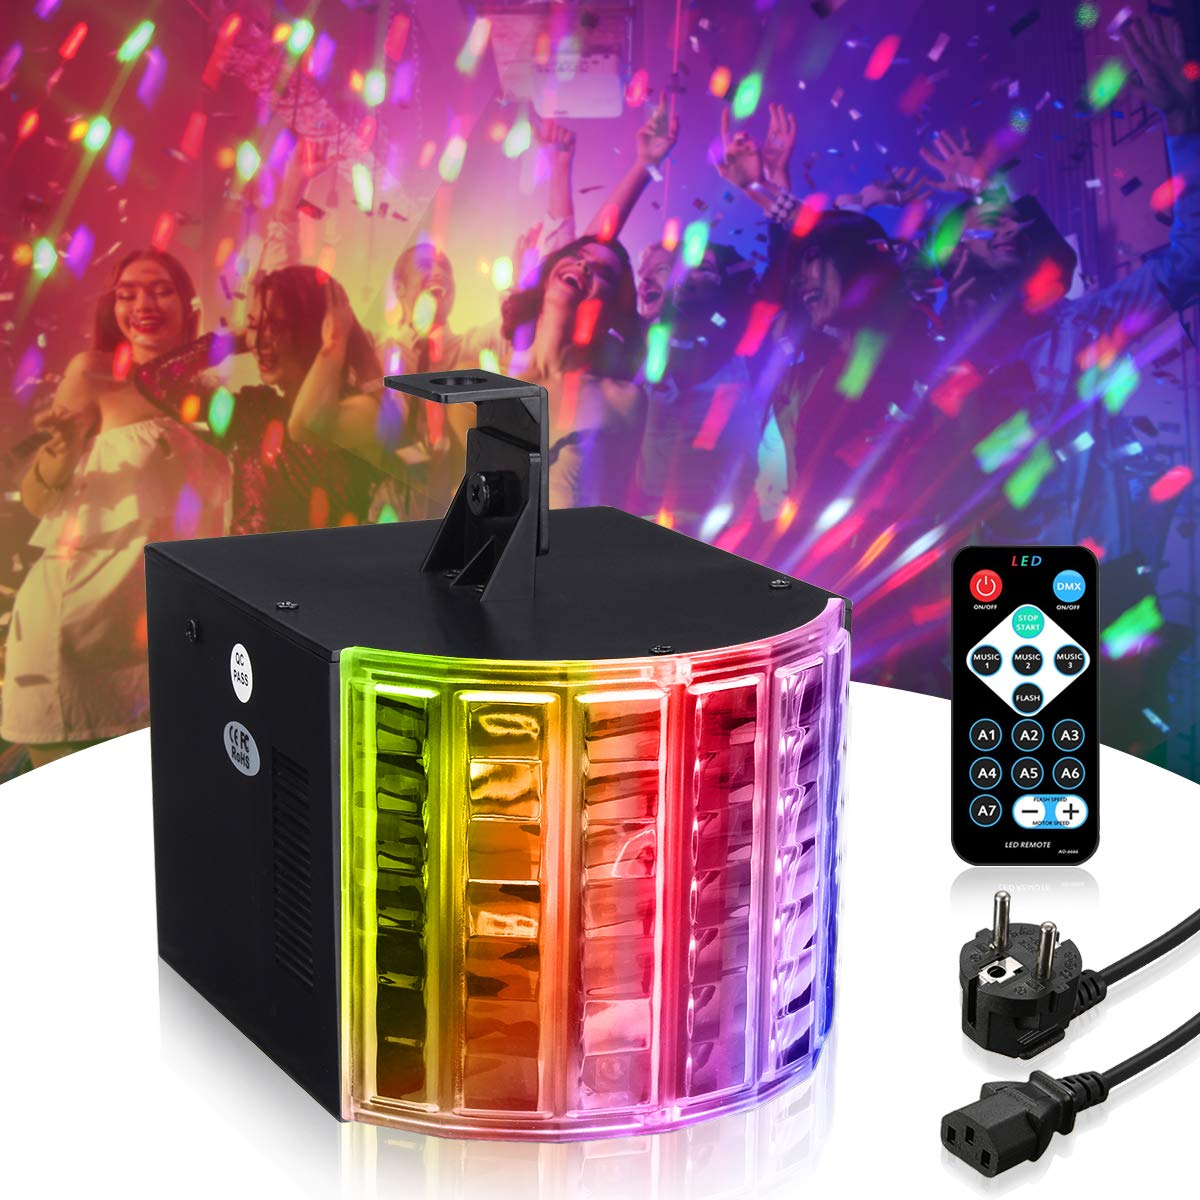 DJ Lights, SOLMORE Party Lights DMX512 Sound Actived Stage Disco Lights with Remote Control for Dance Parties Bar Karaoke Xmas Wedding Show Club 18W by SOLMORE (Image #6)